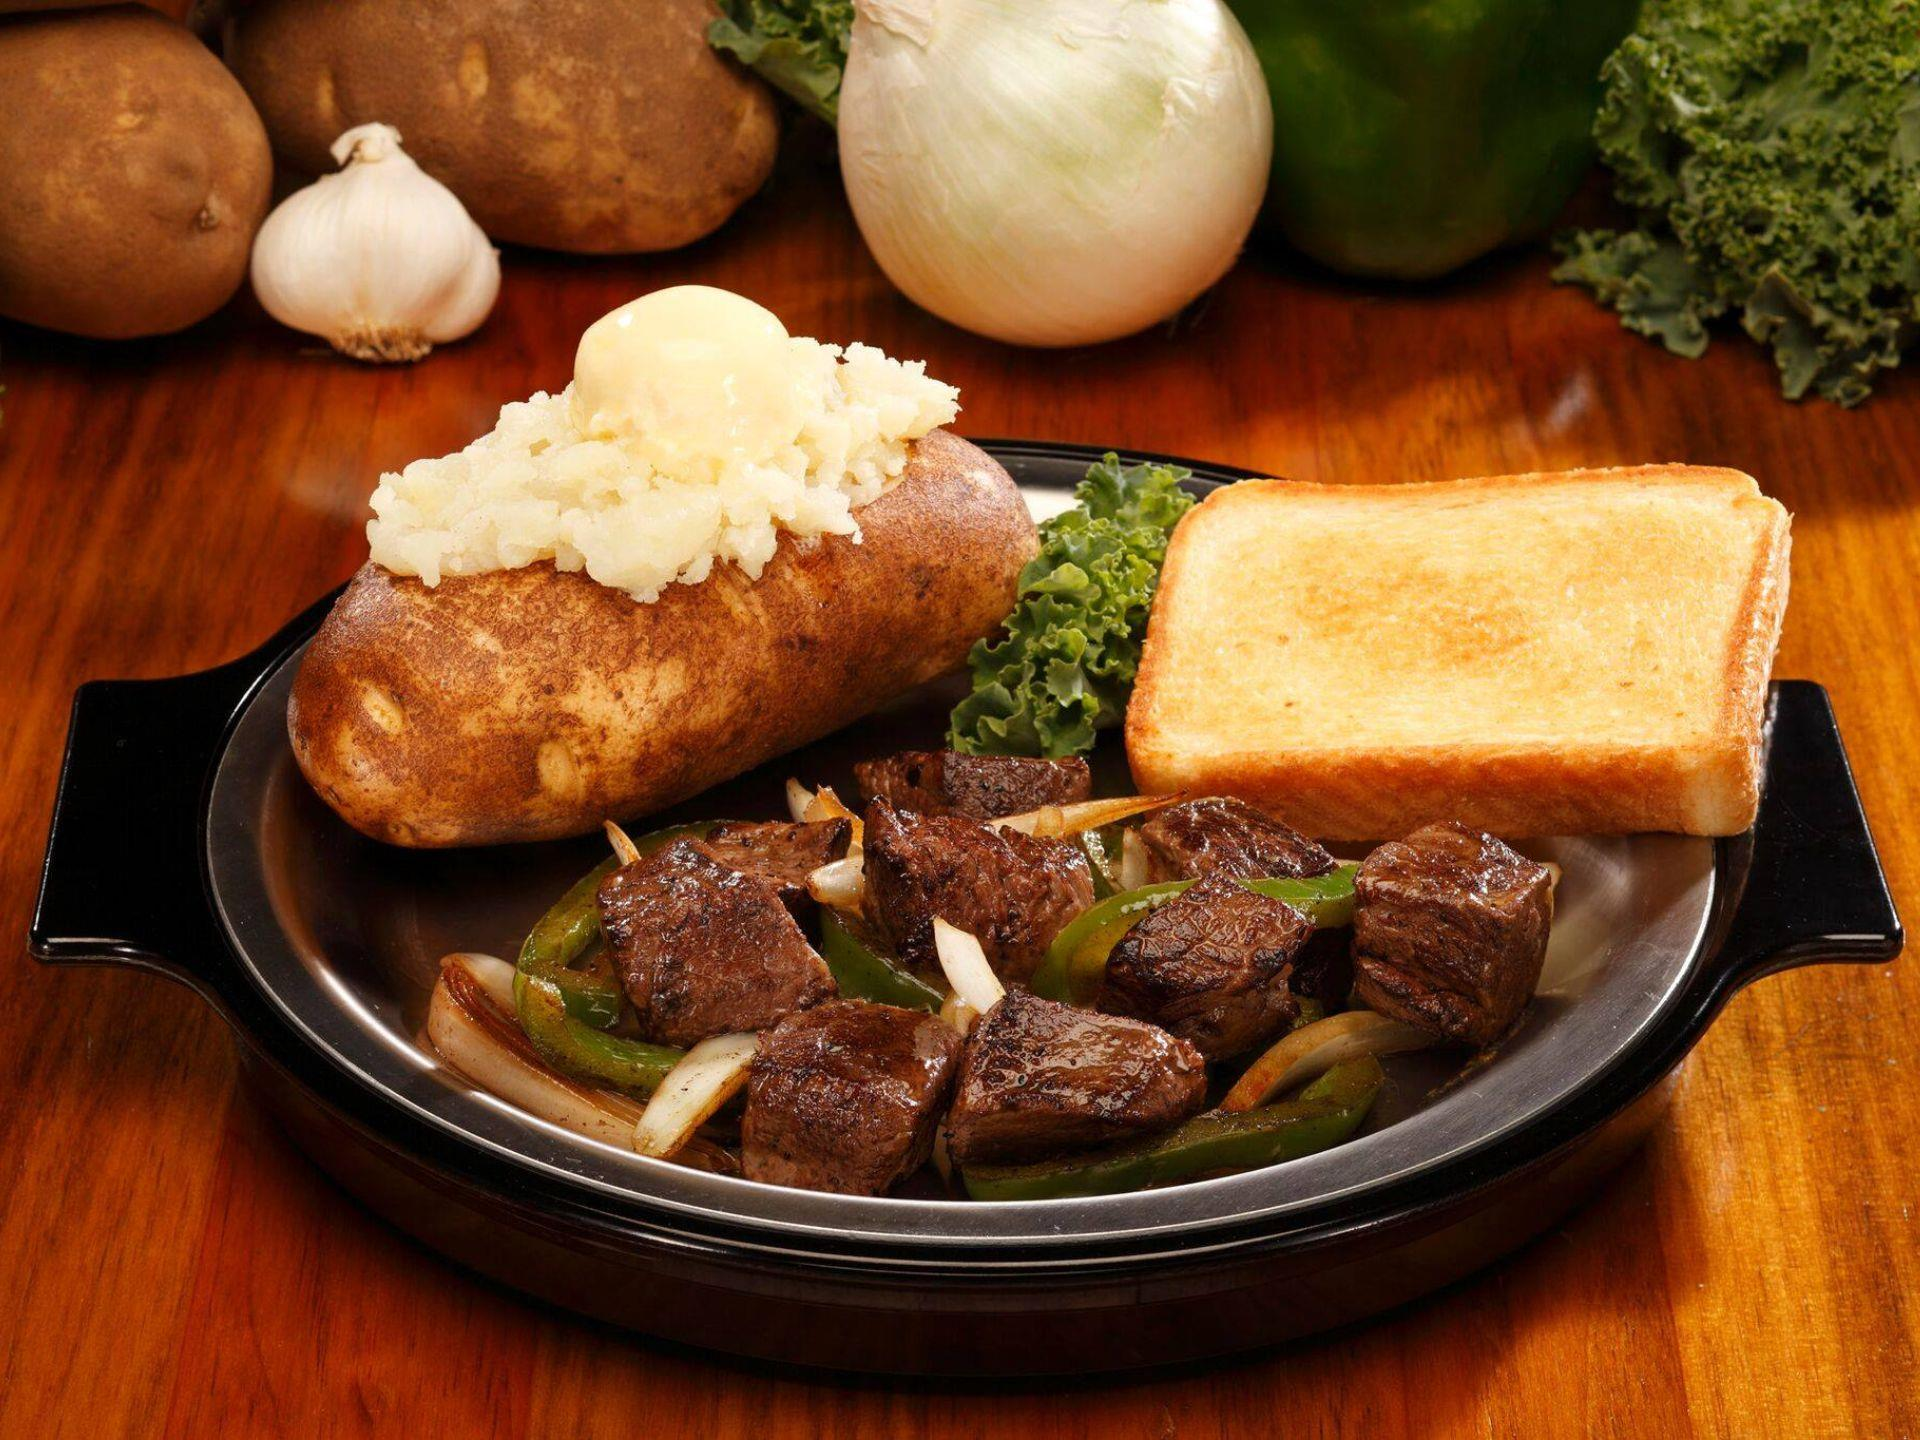 Steak skewers with baked potato and Texas toast